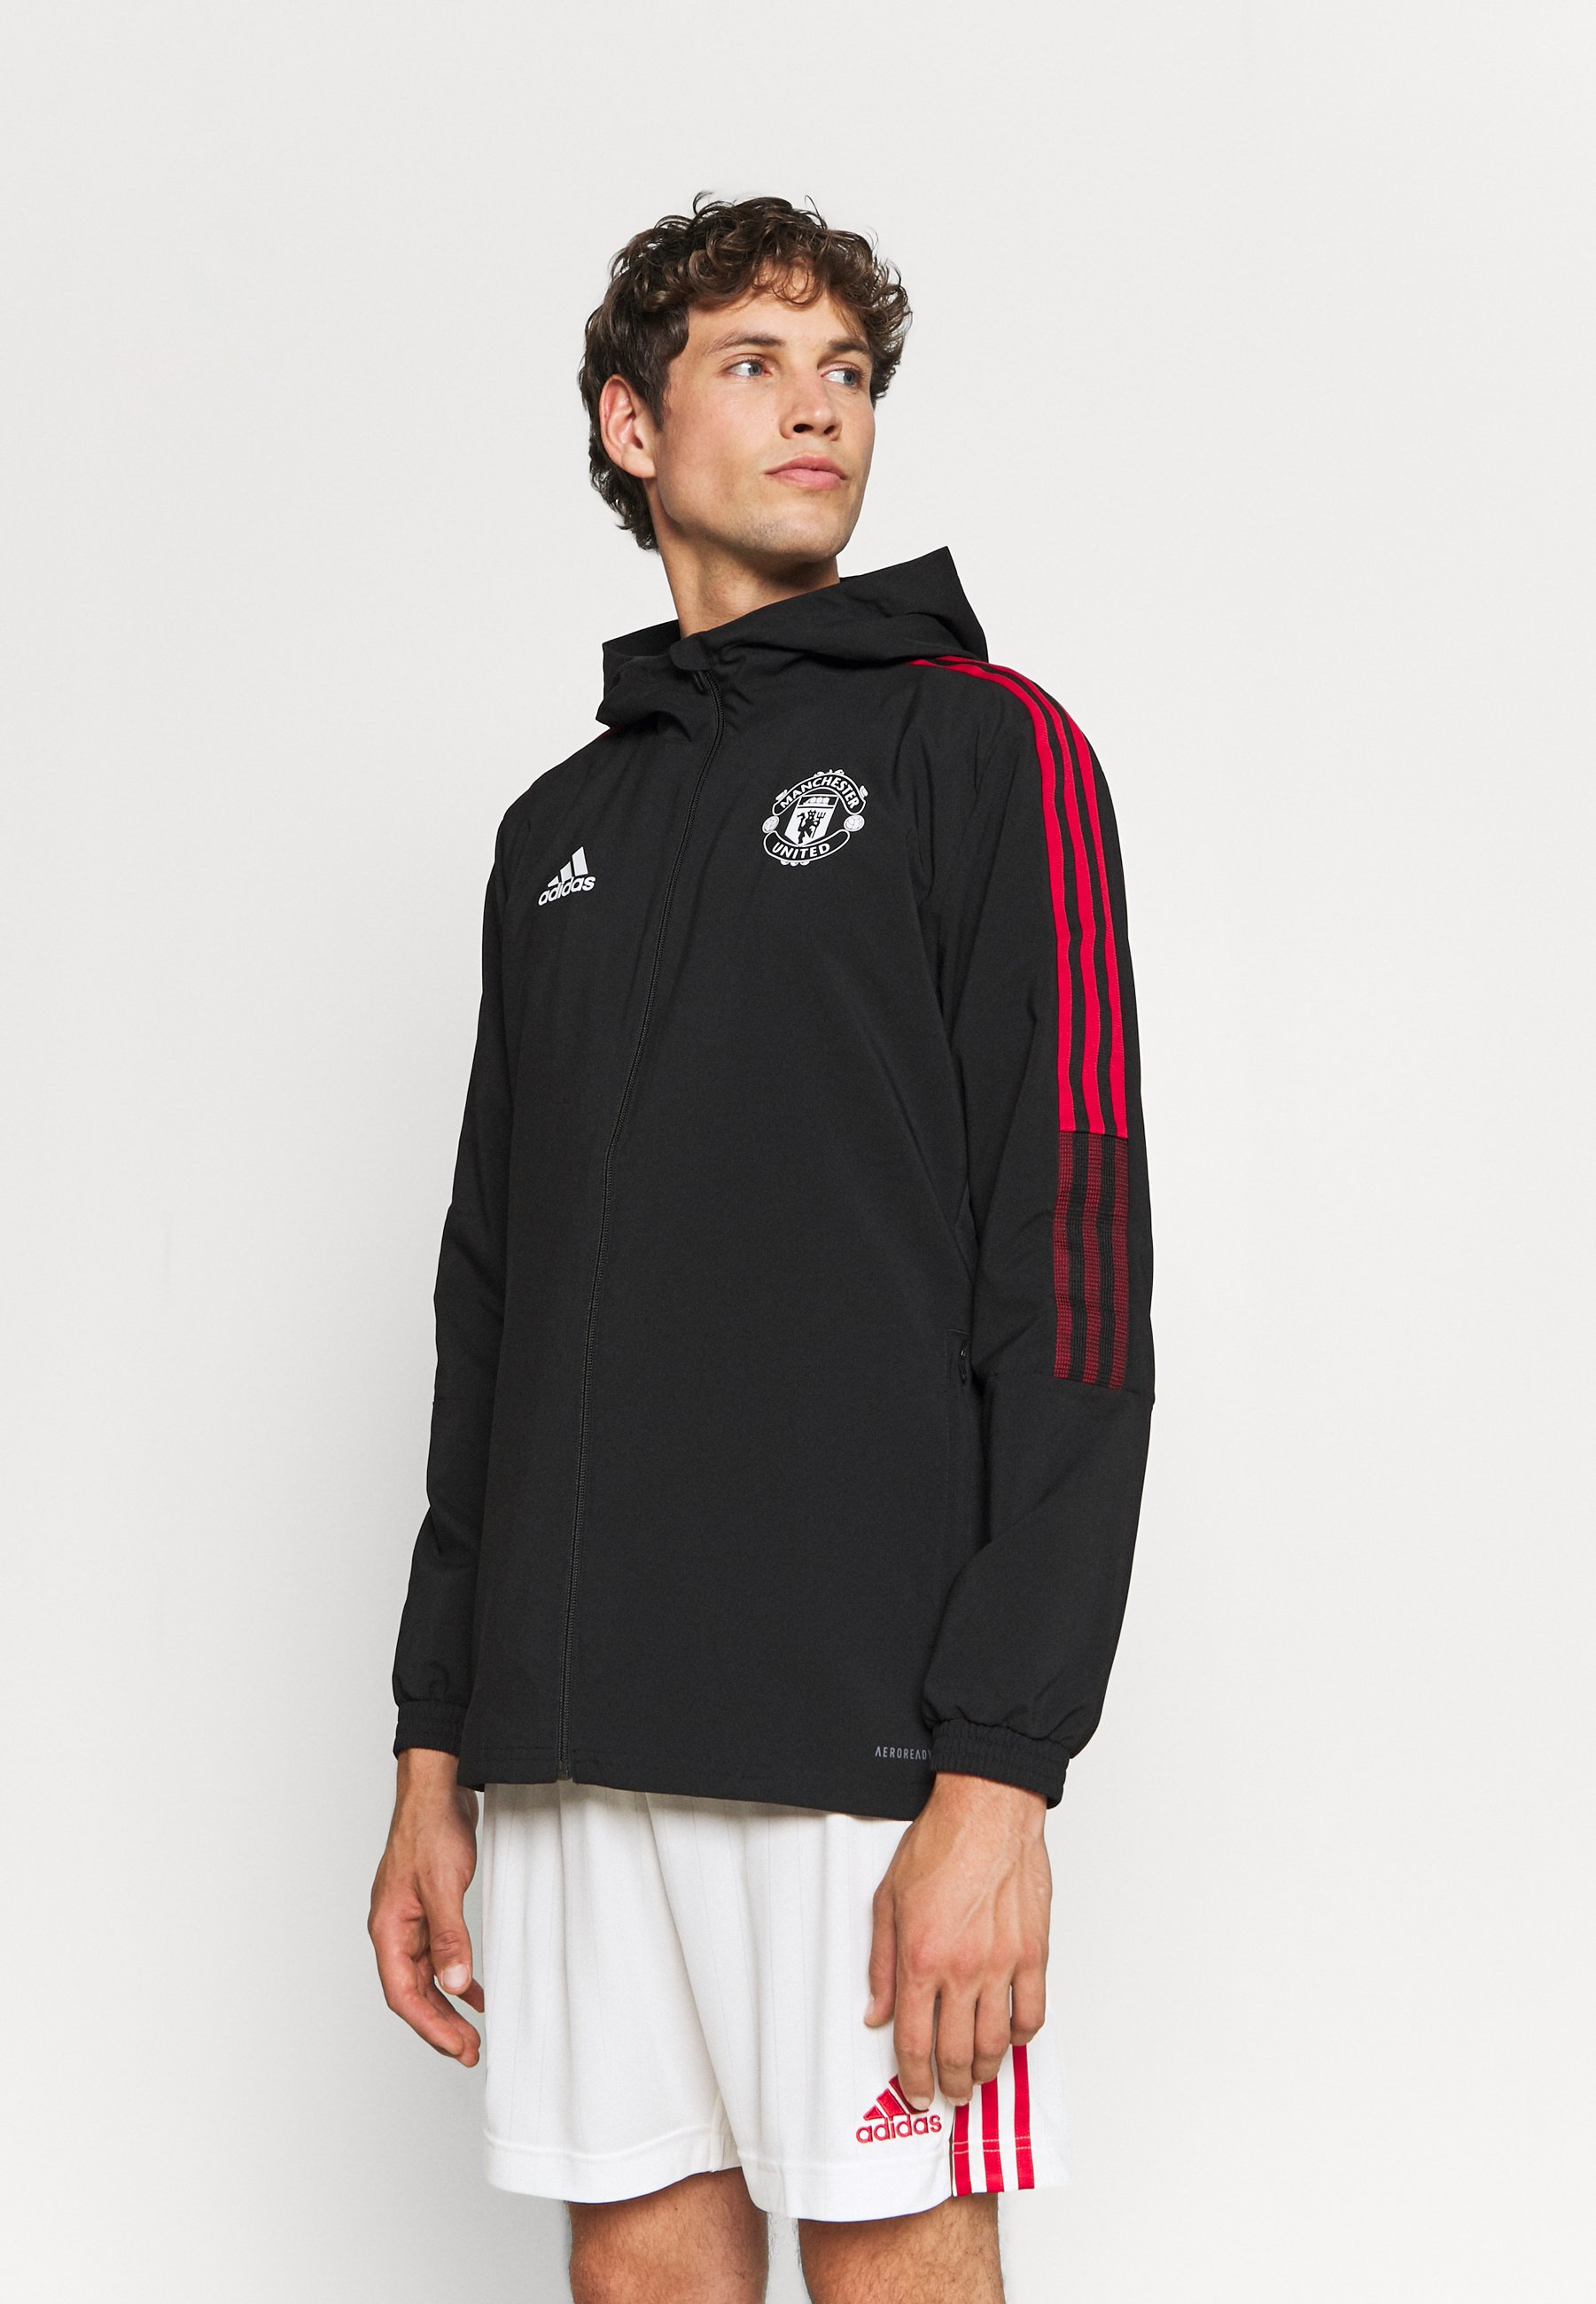 Homme MANCHESTER UNITED PRE JKT FOOTBALL AEROREADY TRACKSUIT JACKET - Article de supporter